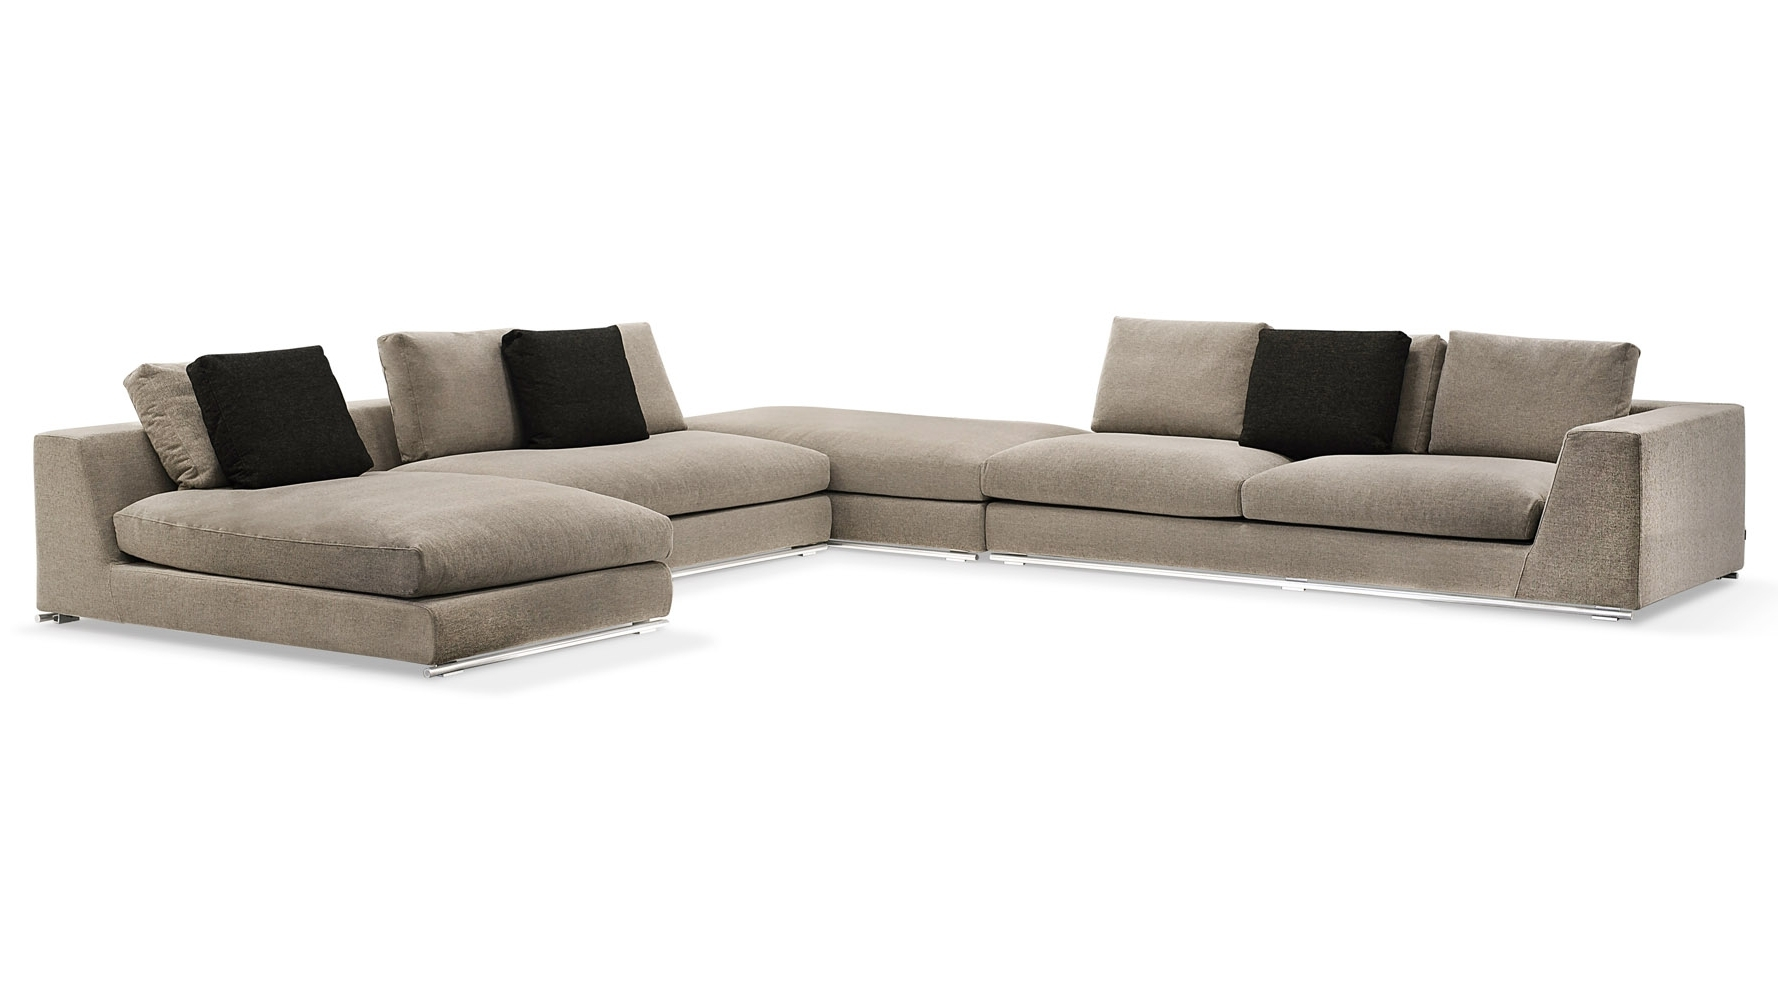 Best And Newest Sectional Sofas With Ottoman Throughout Comodo Sectional Sofa With Ottoman – Grey (View 16 of 20)